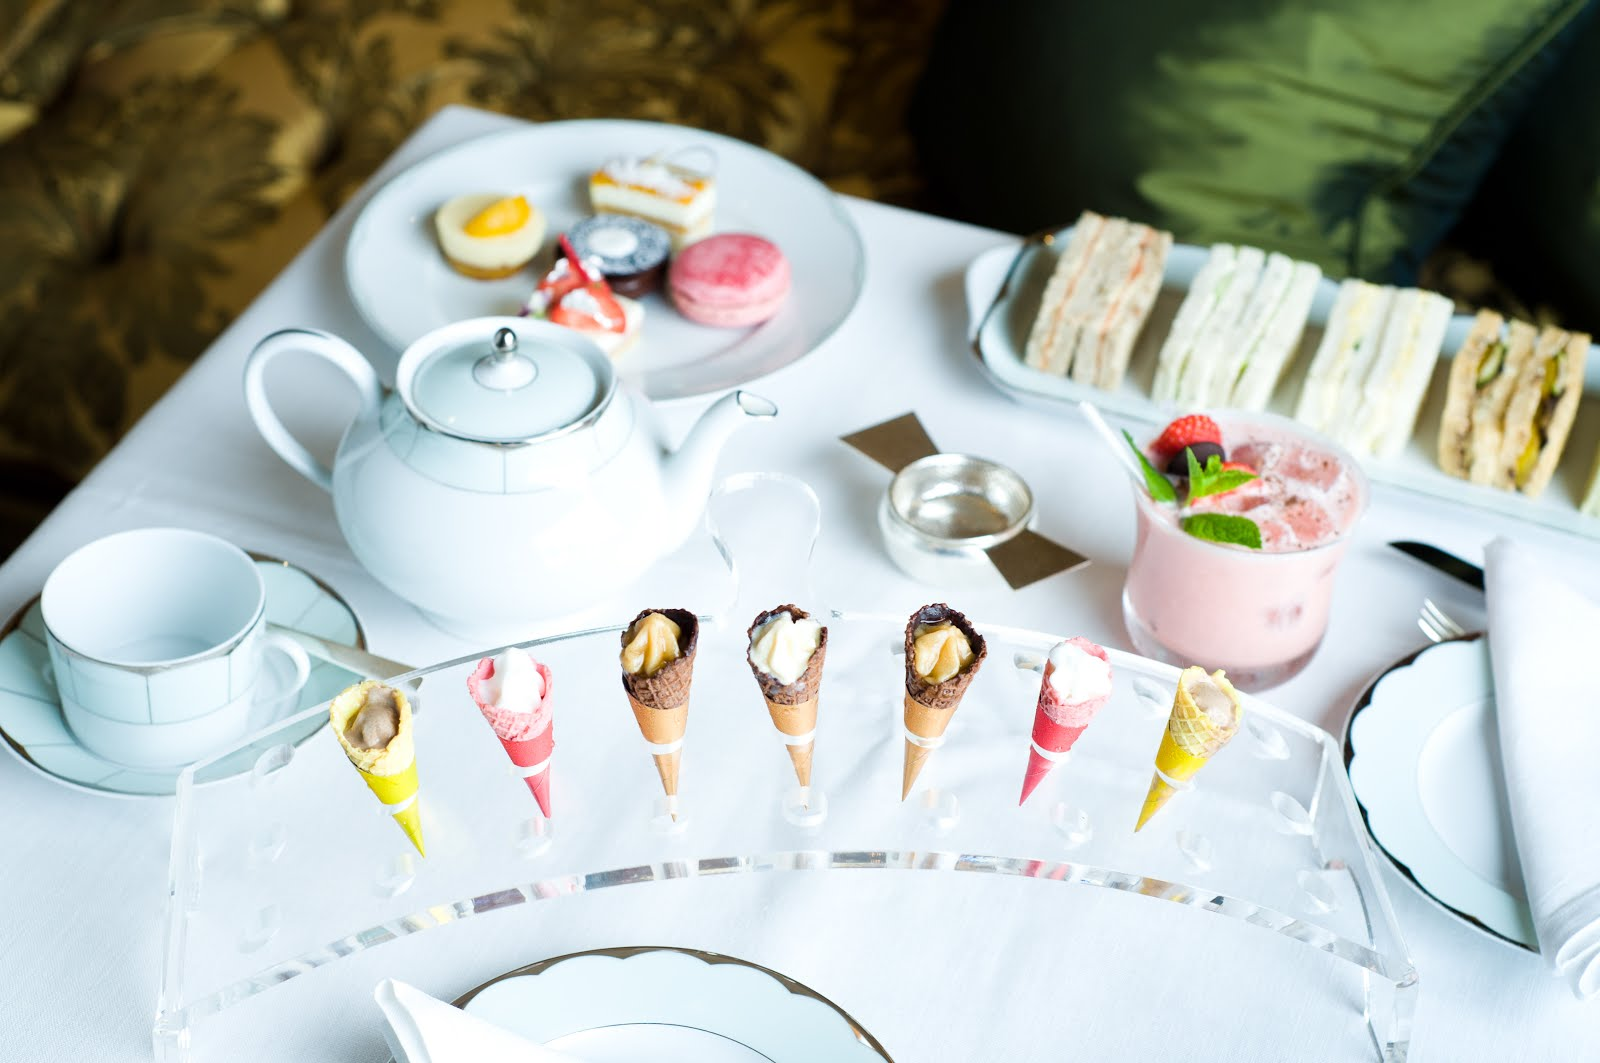 Luxury afternoon tea in London at the Dorchester